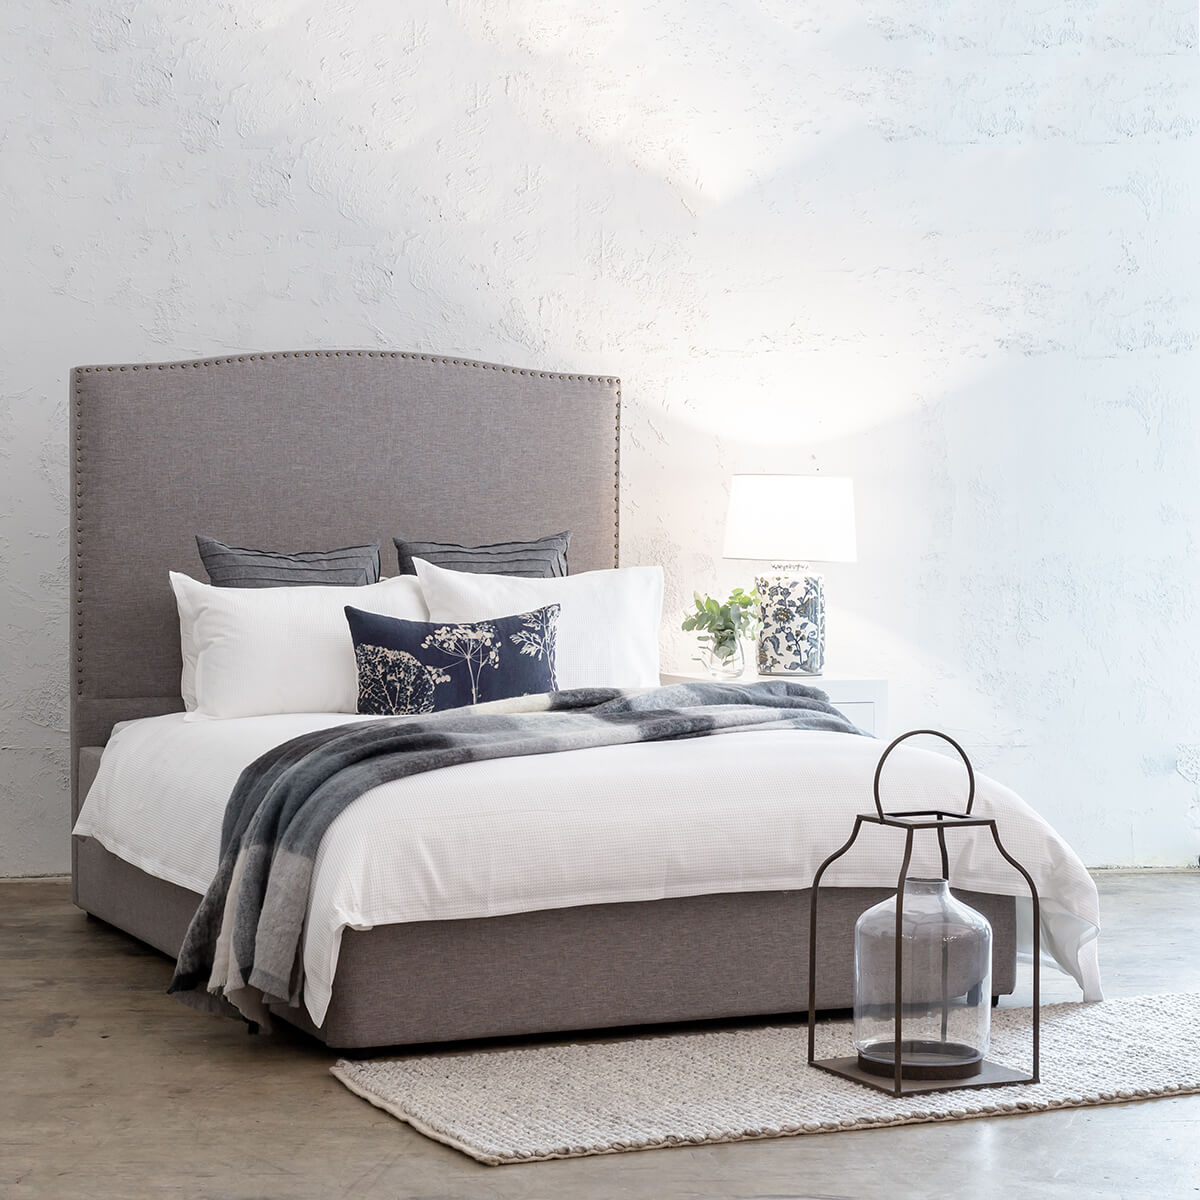 AVALON BED WITH STUDDED CURVE FRAME   |  GREY LINEN  |  QUEEN SIZE BED